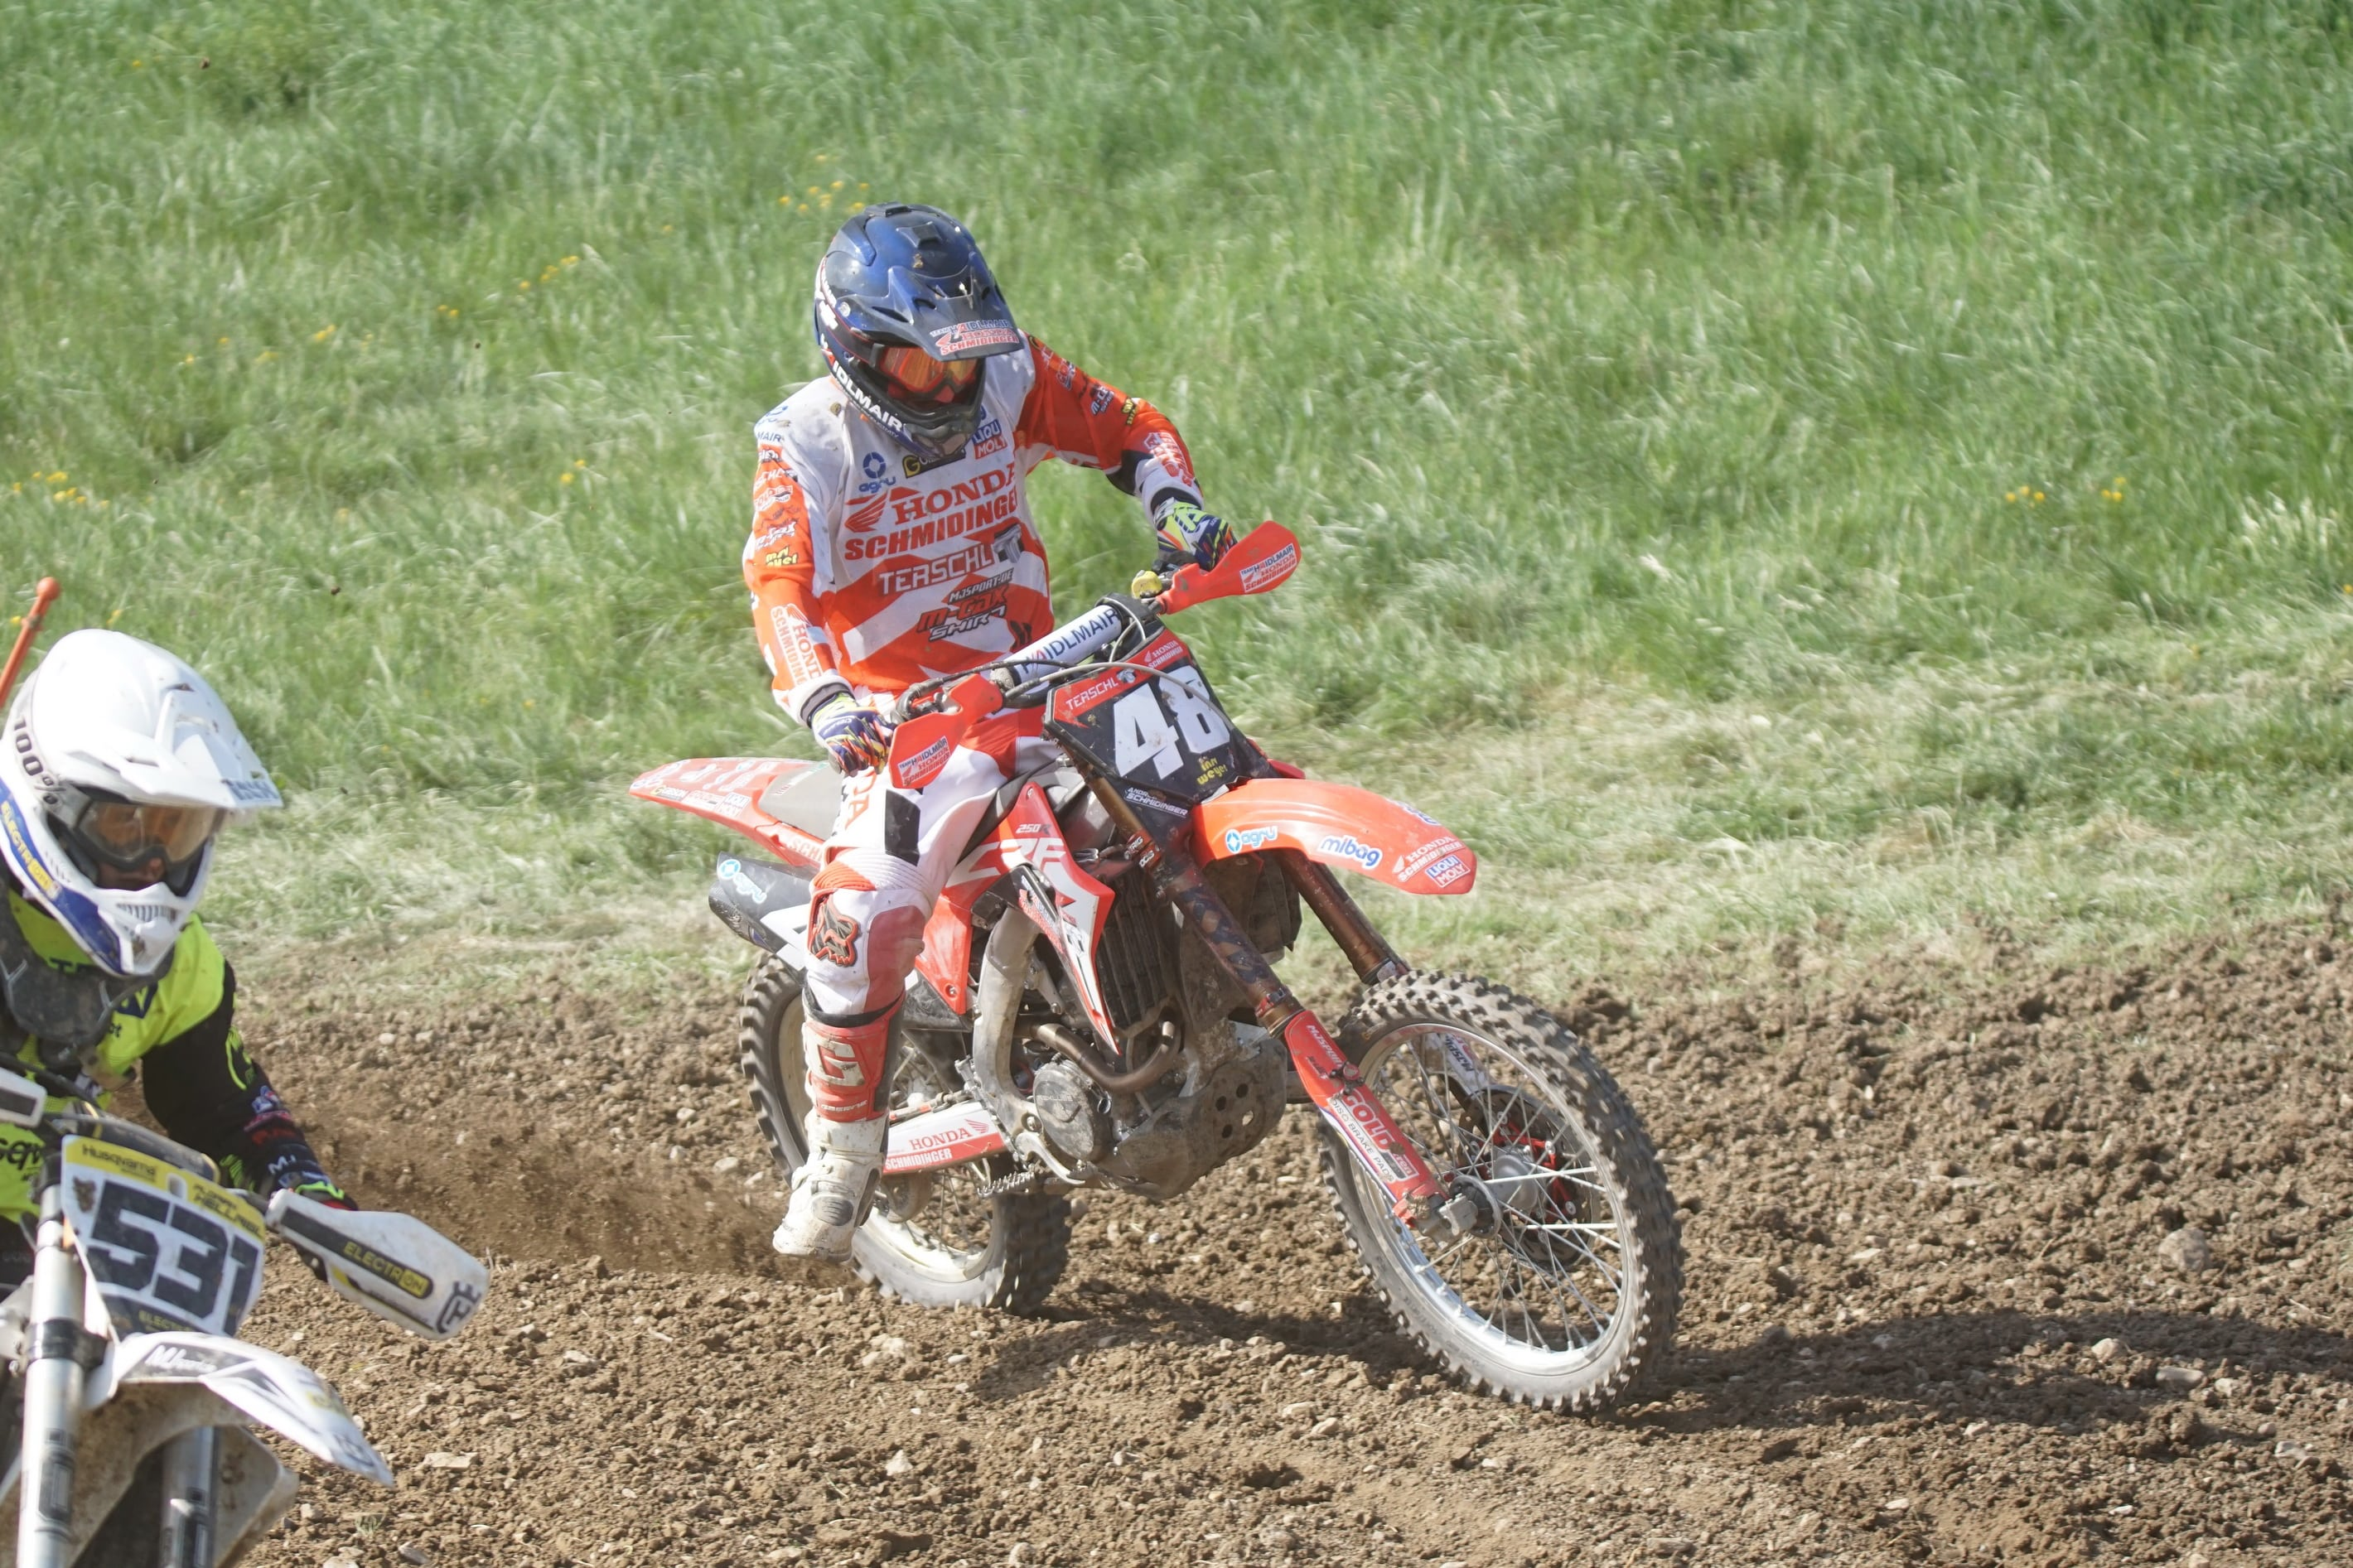 DSC 904_Moto Cross Sittendorf Teil1 am 29.04.2018